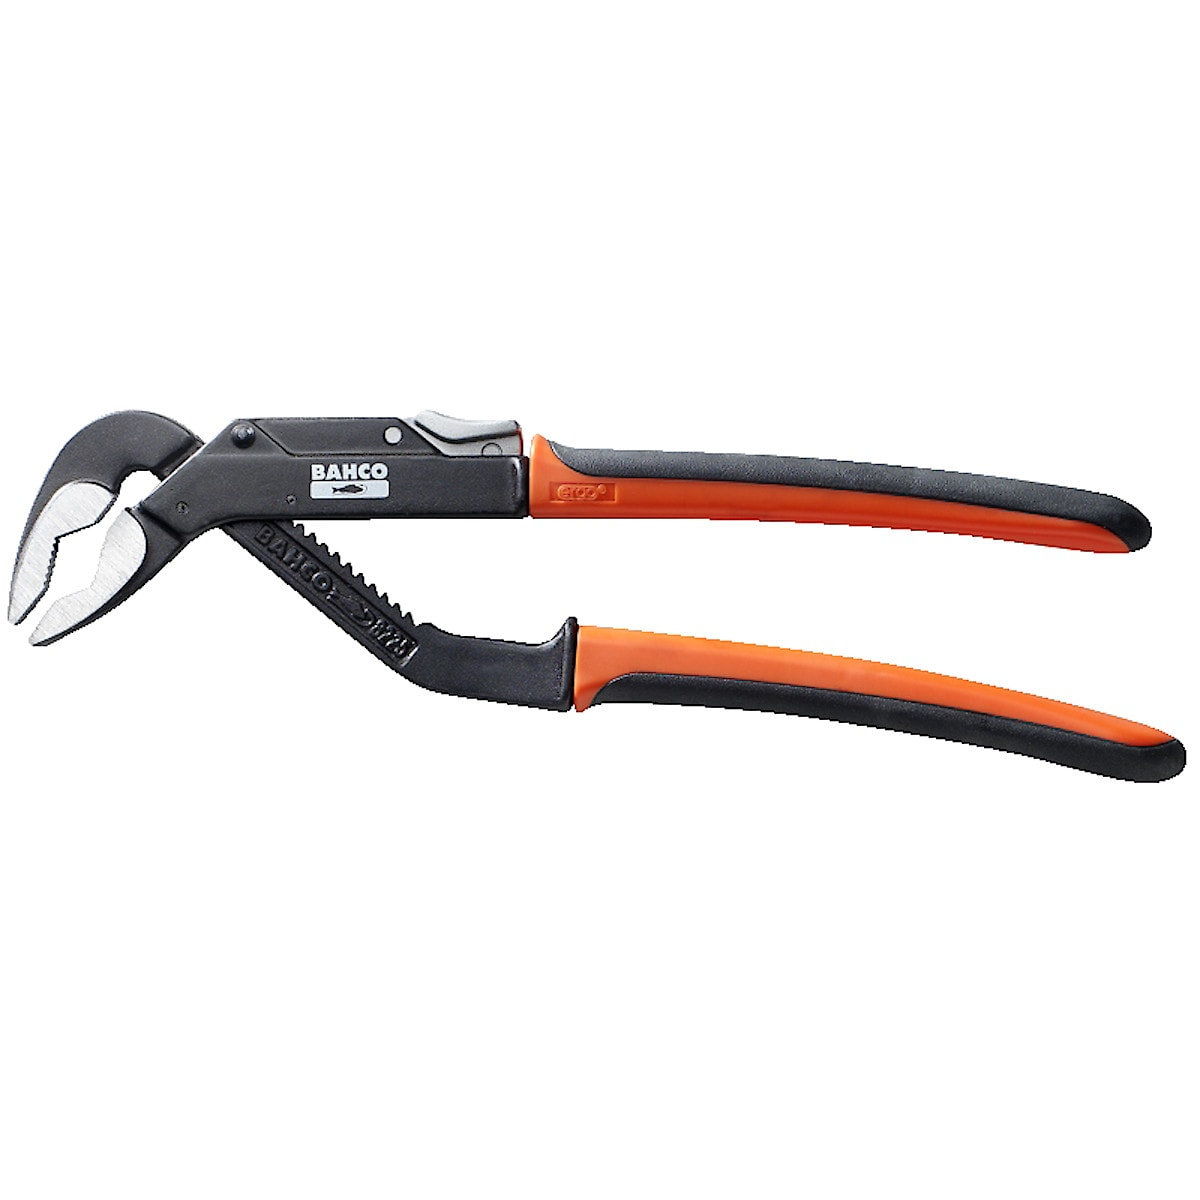 Bahco Ergo Waterpump Pliers